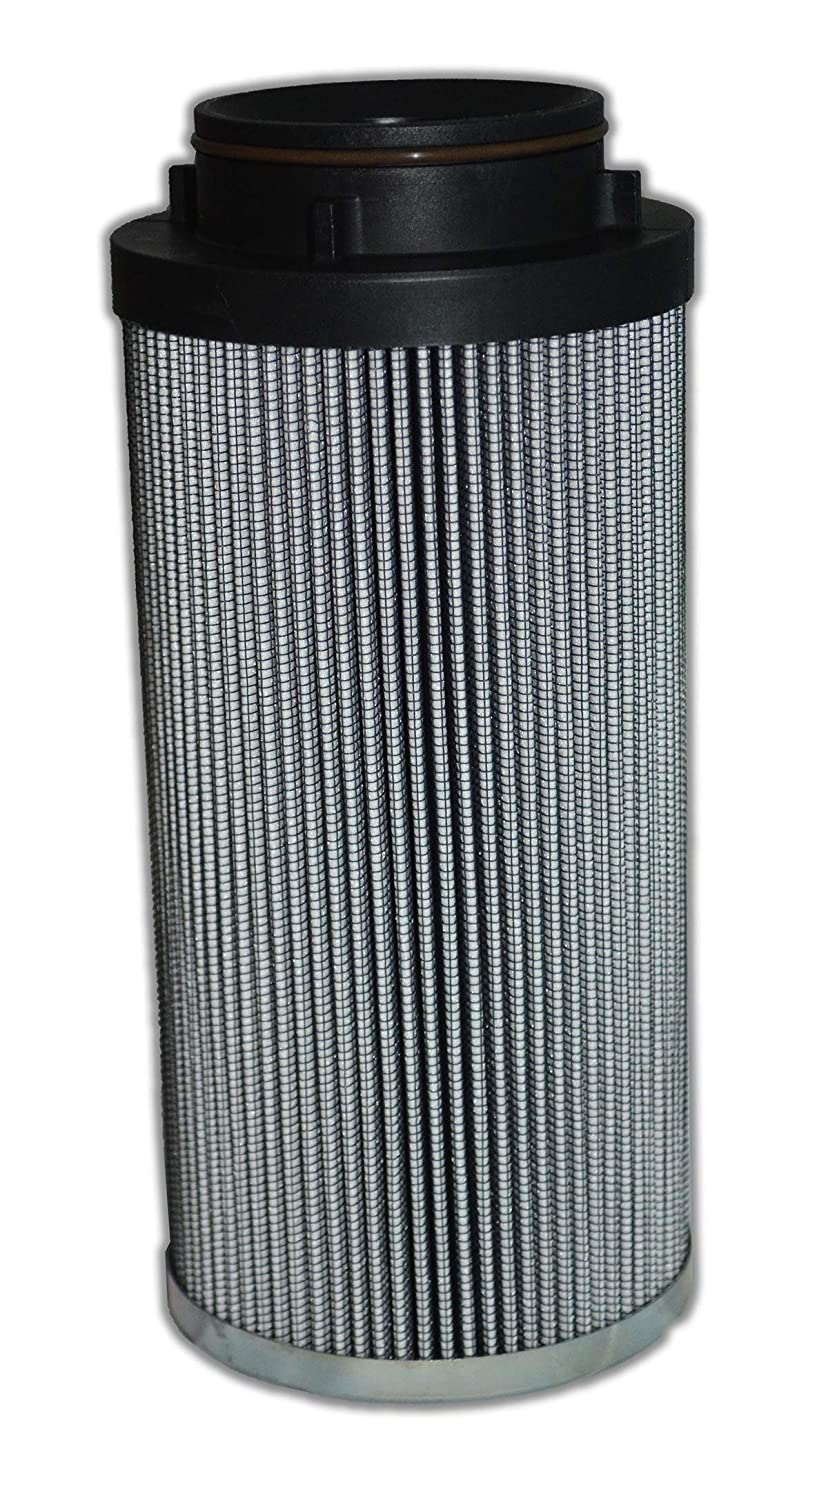 Parker G02017 Heavy Duty Replacement Hydraulic Filter Element from Big Filter